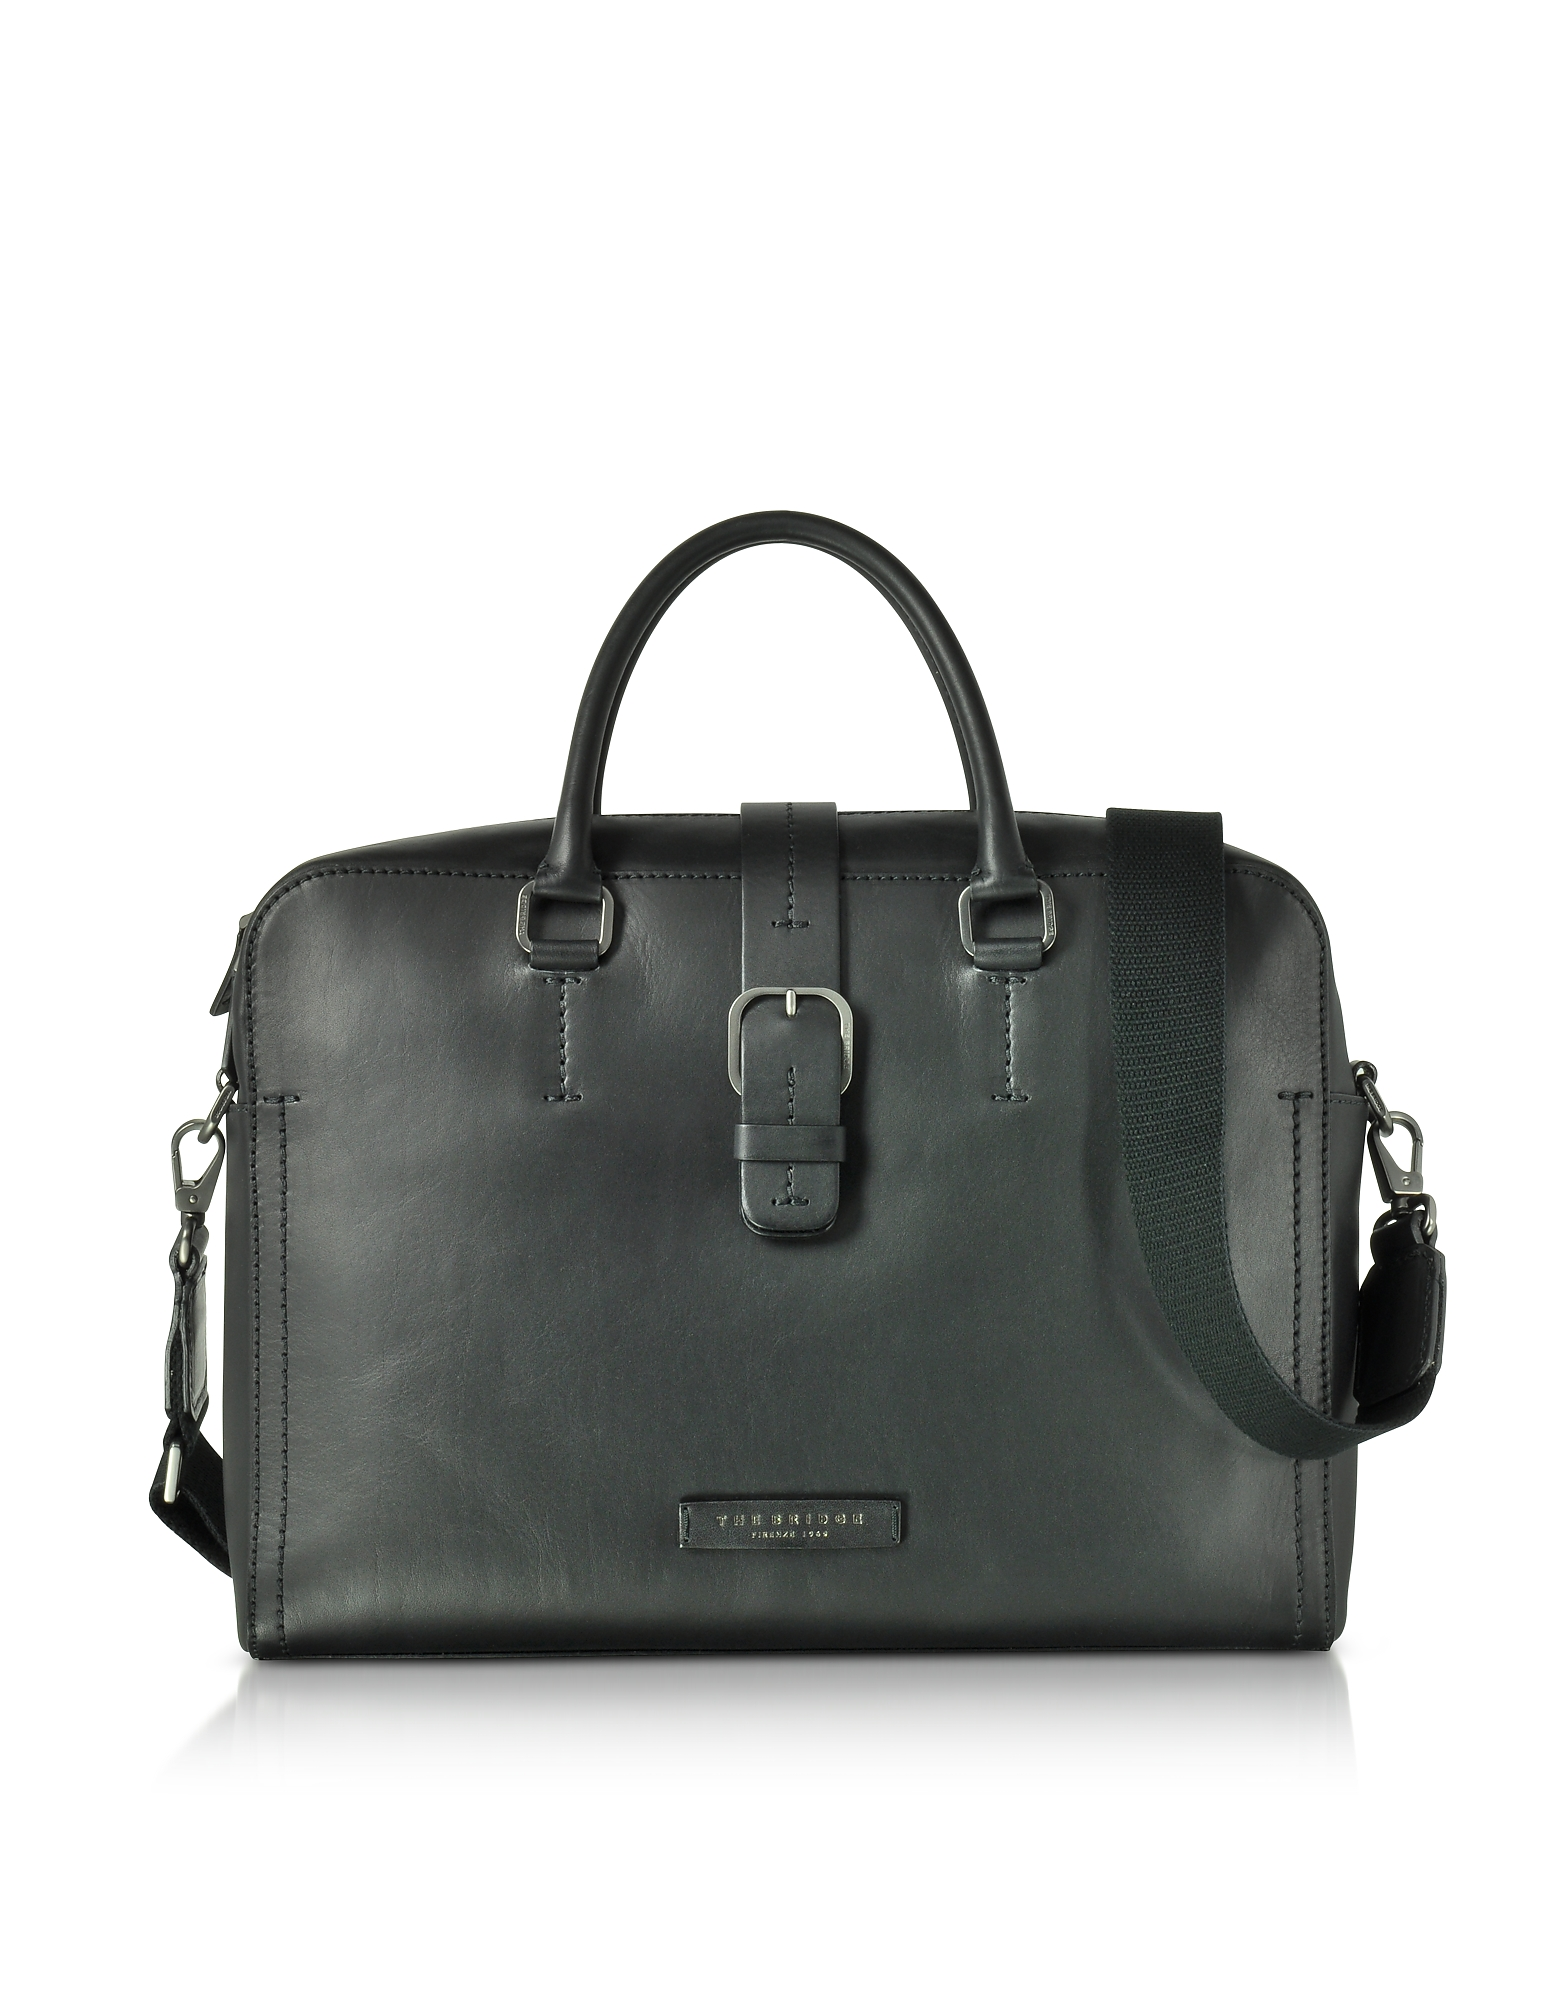 Image of The Bridge Designer Briefcases, Black Leather Double Handle Briefcase w/Detachable Shoulder Strap